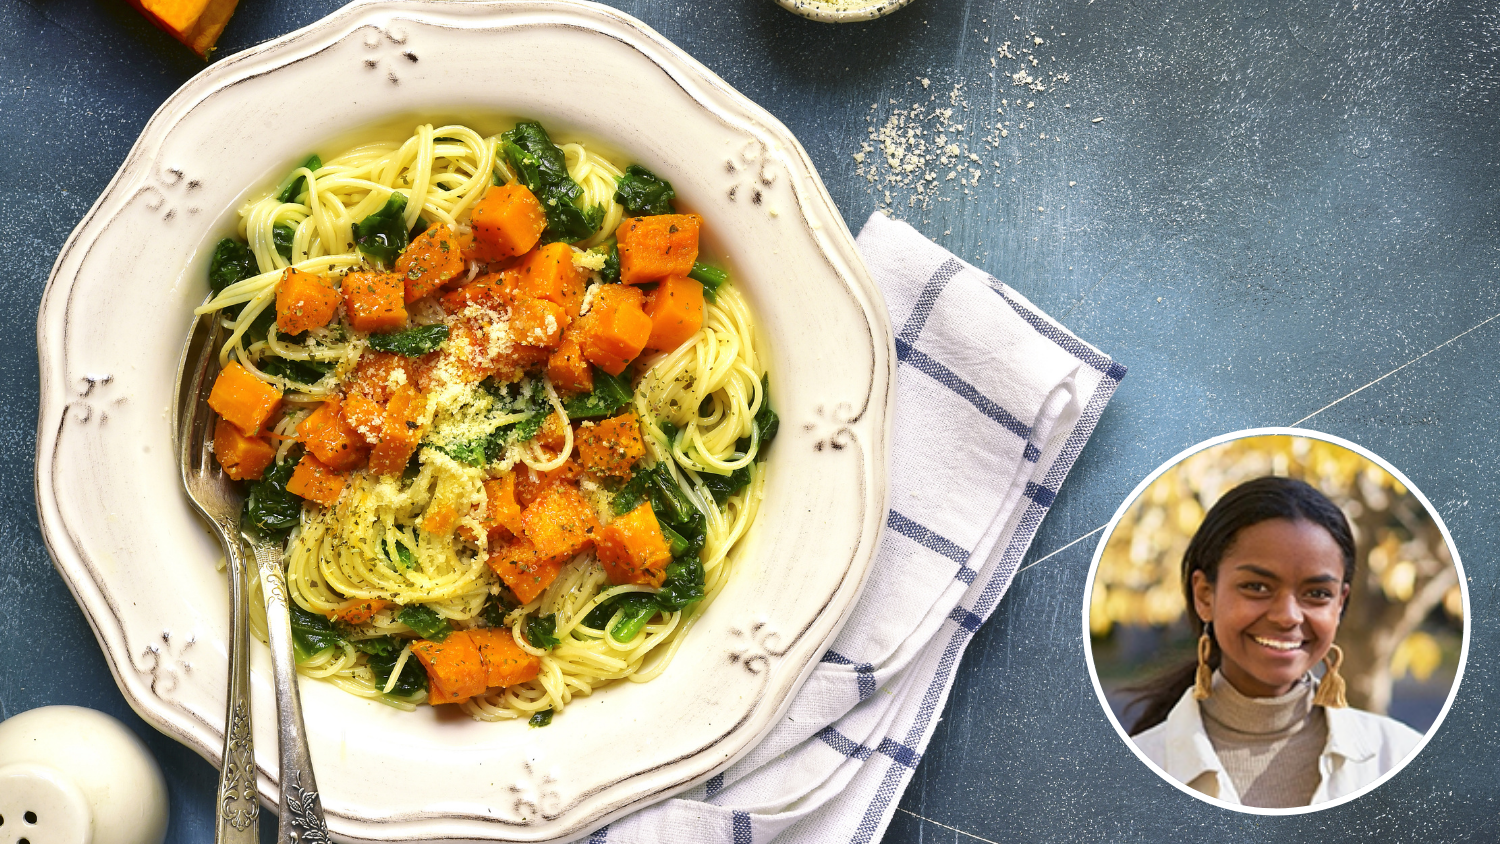 Image for Virtual Class – Budget Cooking: Butternut Squash Pasta with Kale